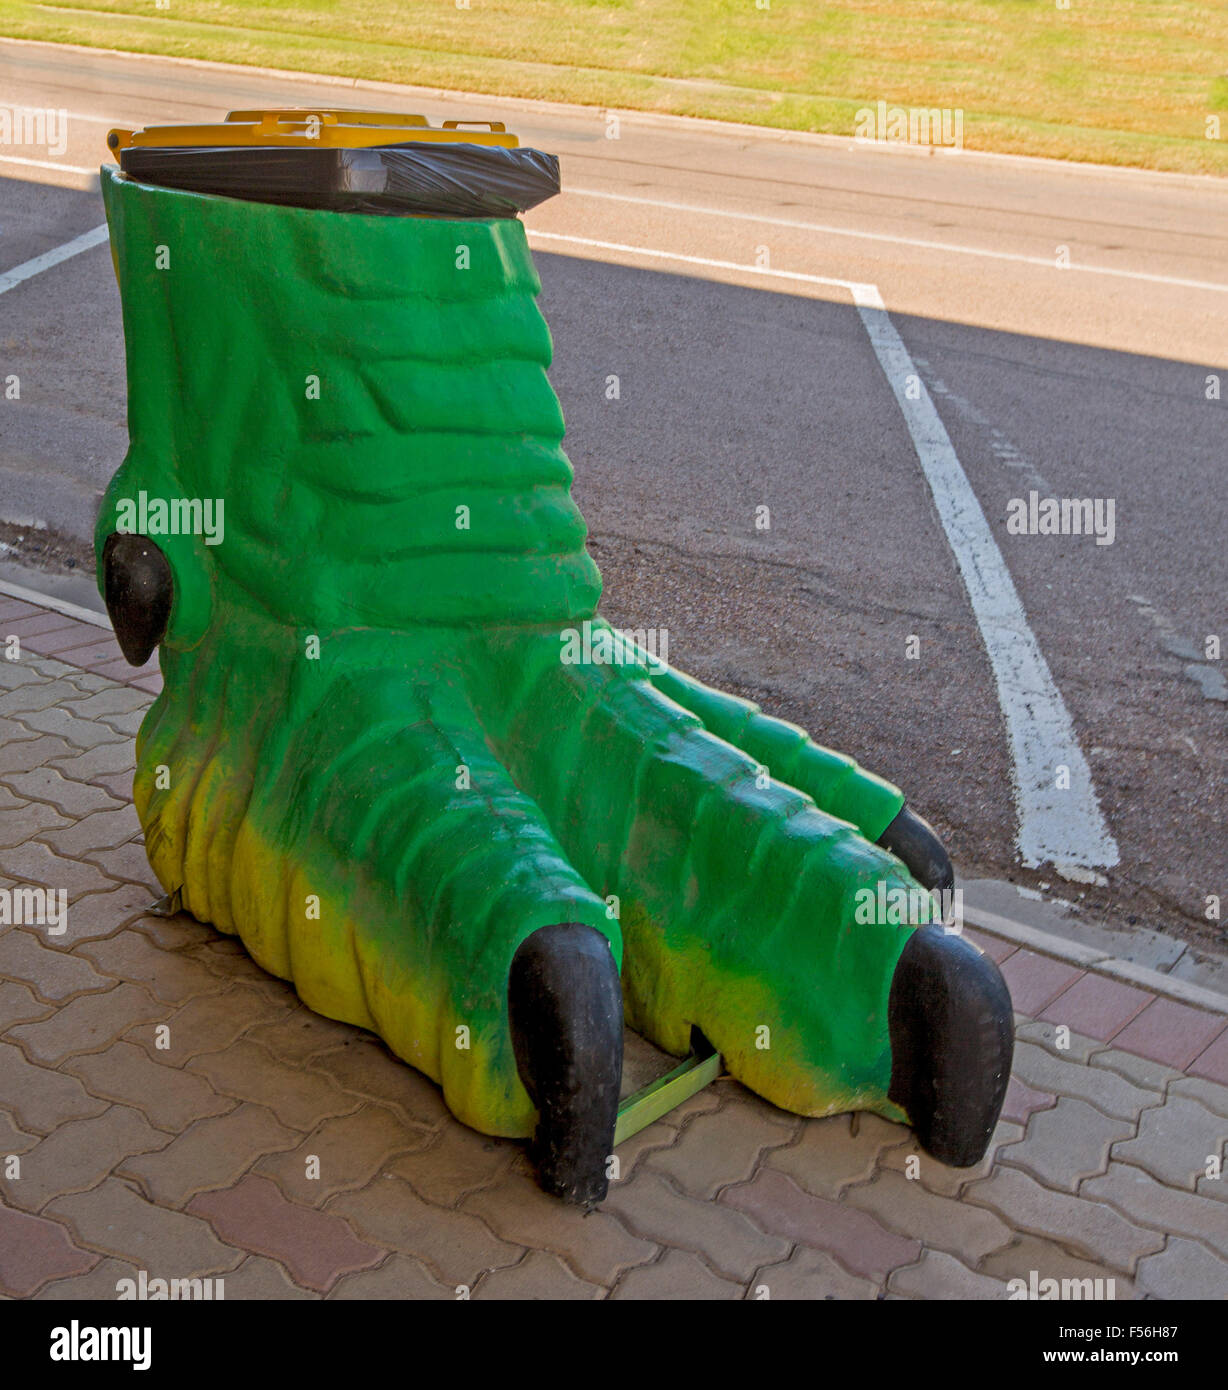 stock photo unique rubbish garbage bin replica of green dinosaur foot on paved footpath in outback australian town of winton